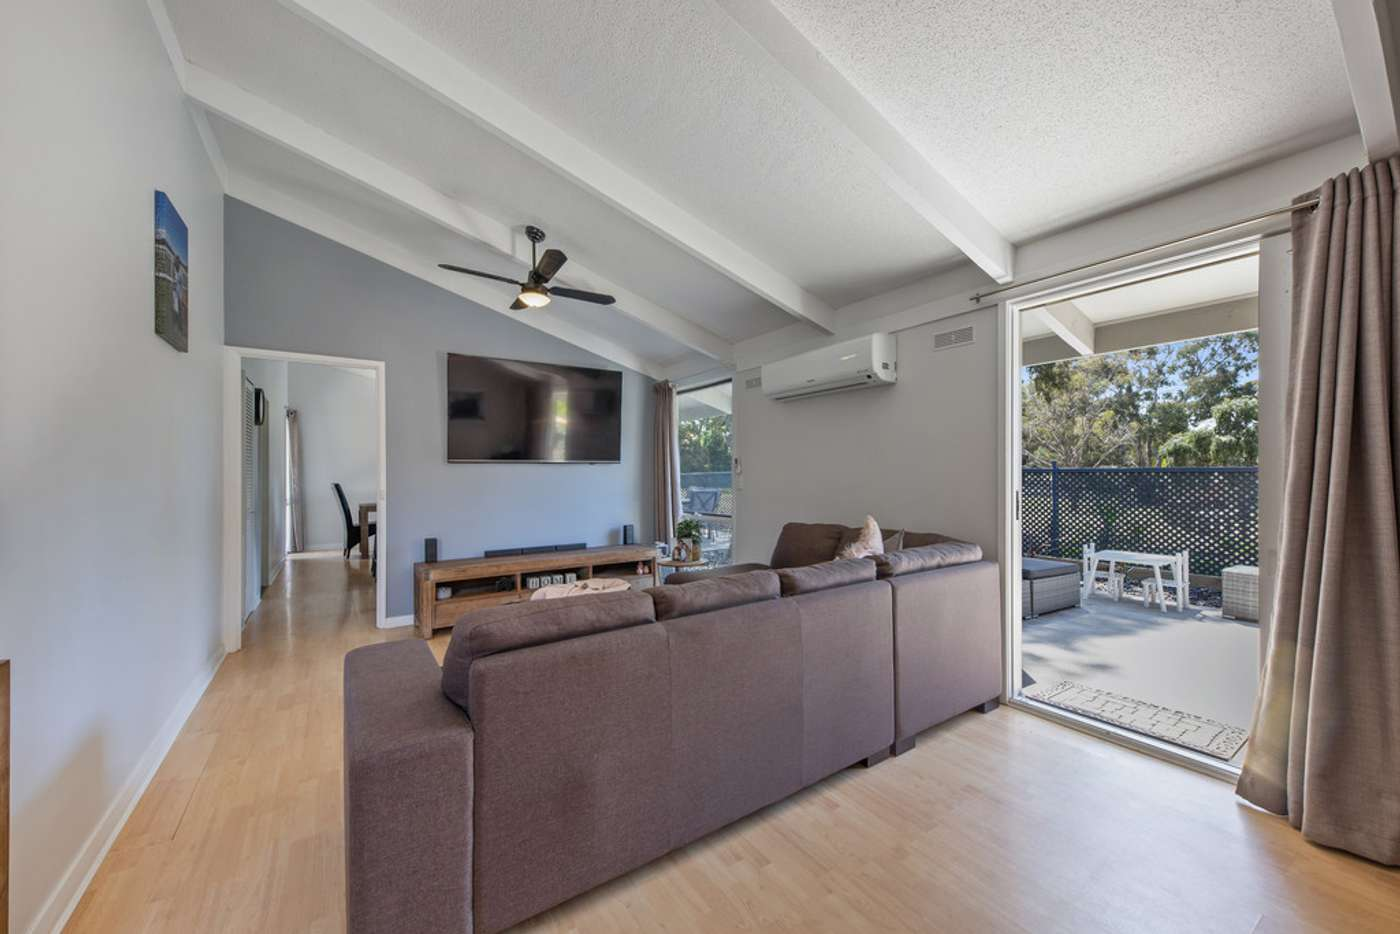 Fifth view of Homely house listing, 22 Wiltshire Crescent, Wodonga VIC 3690